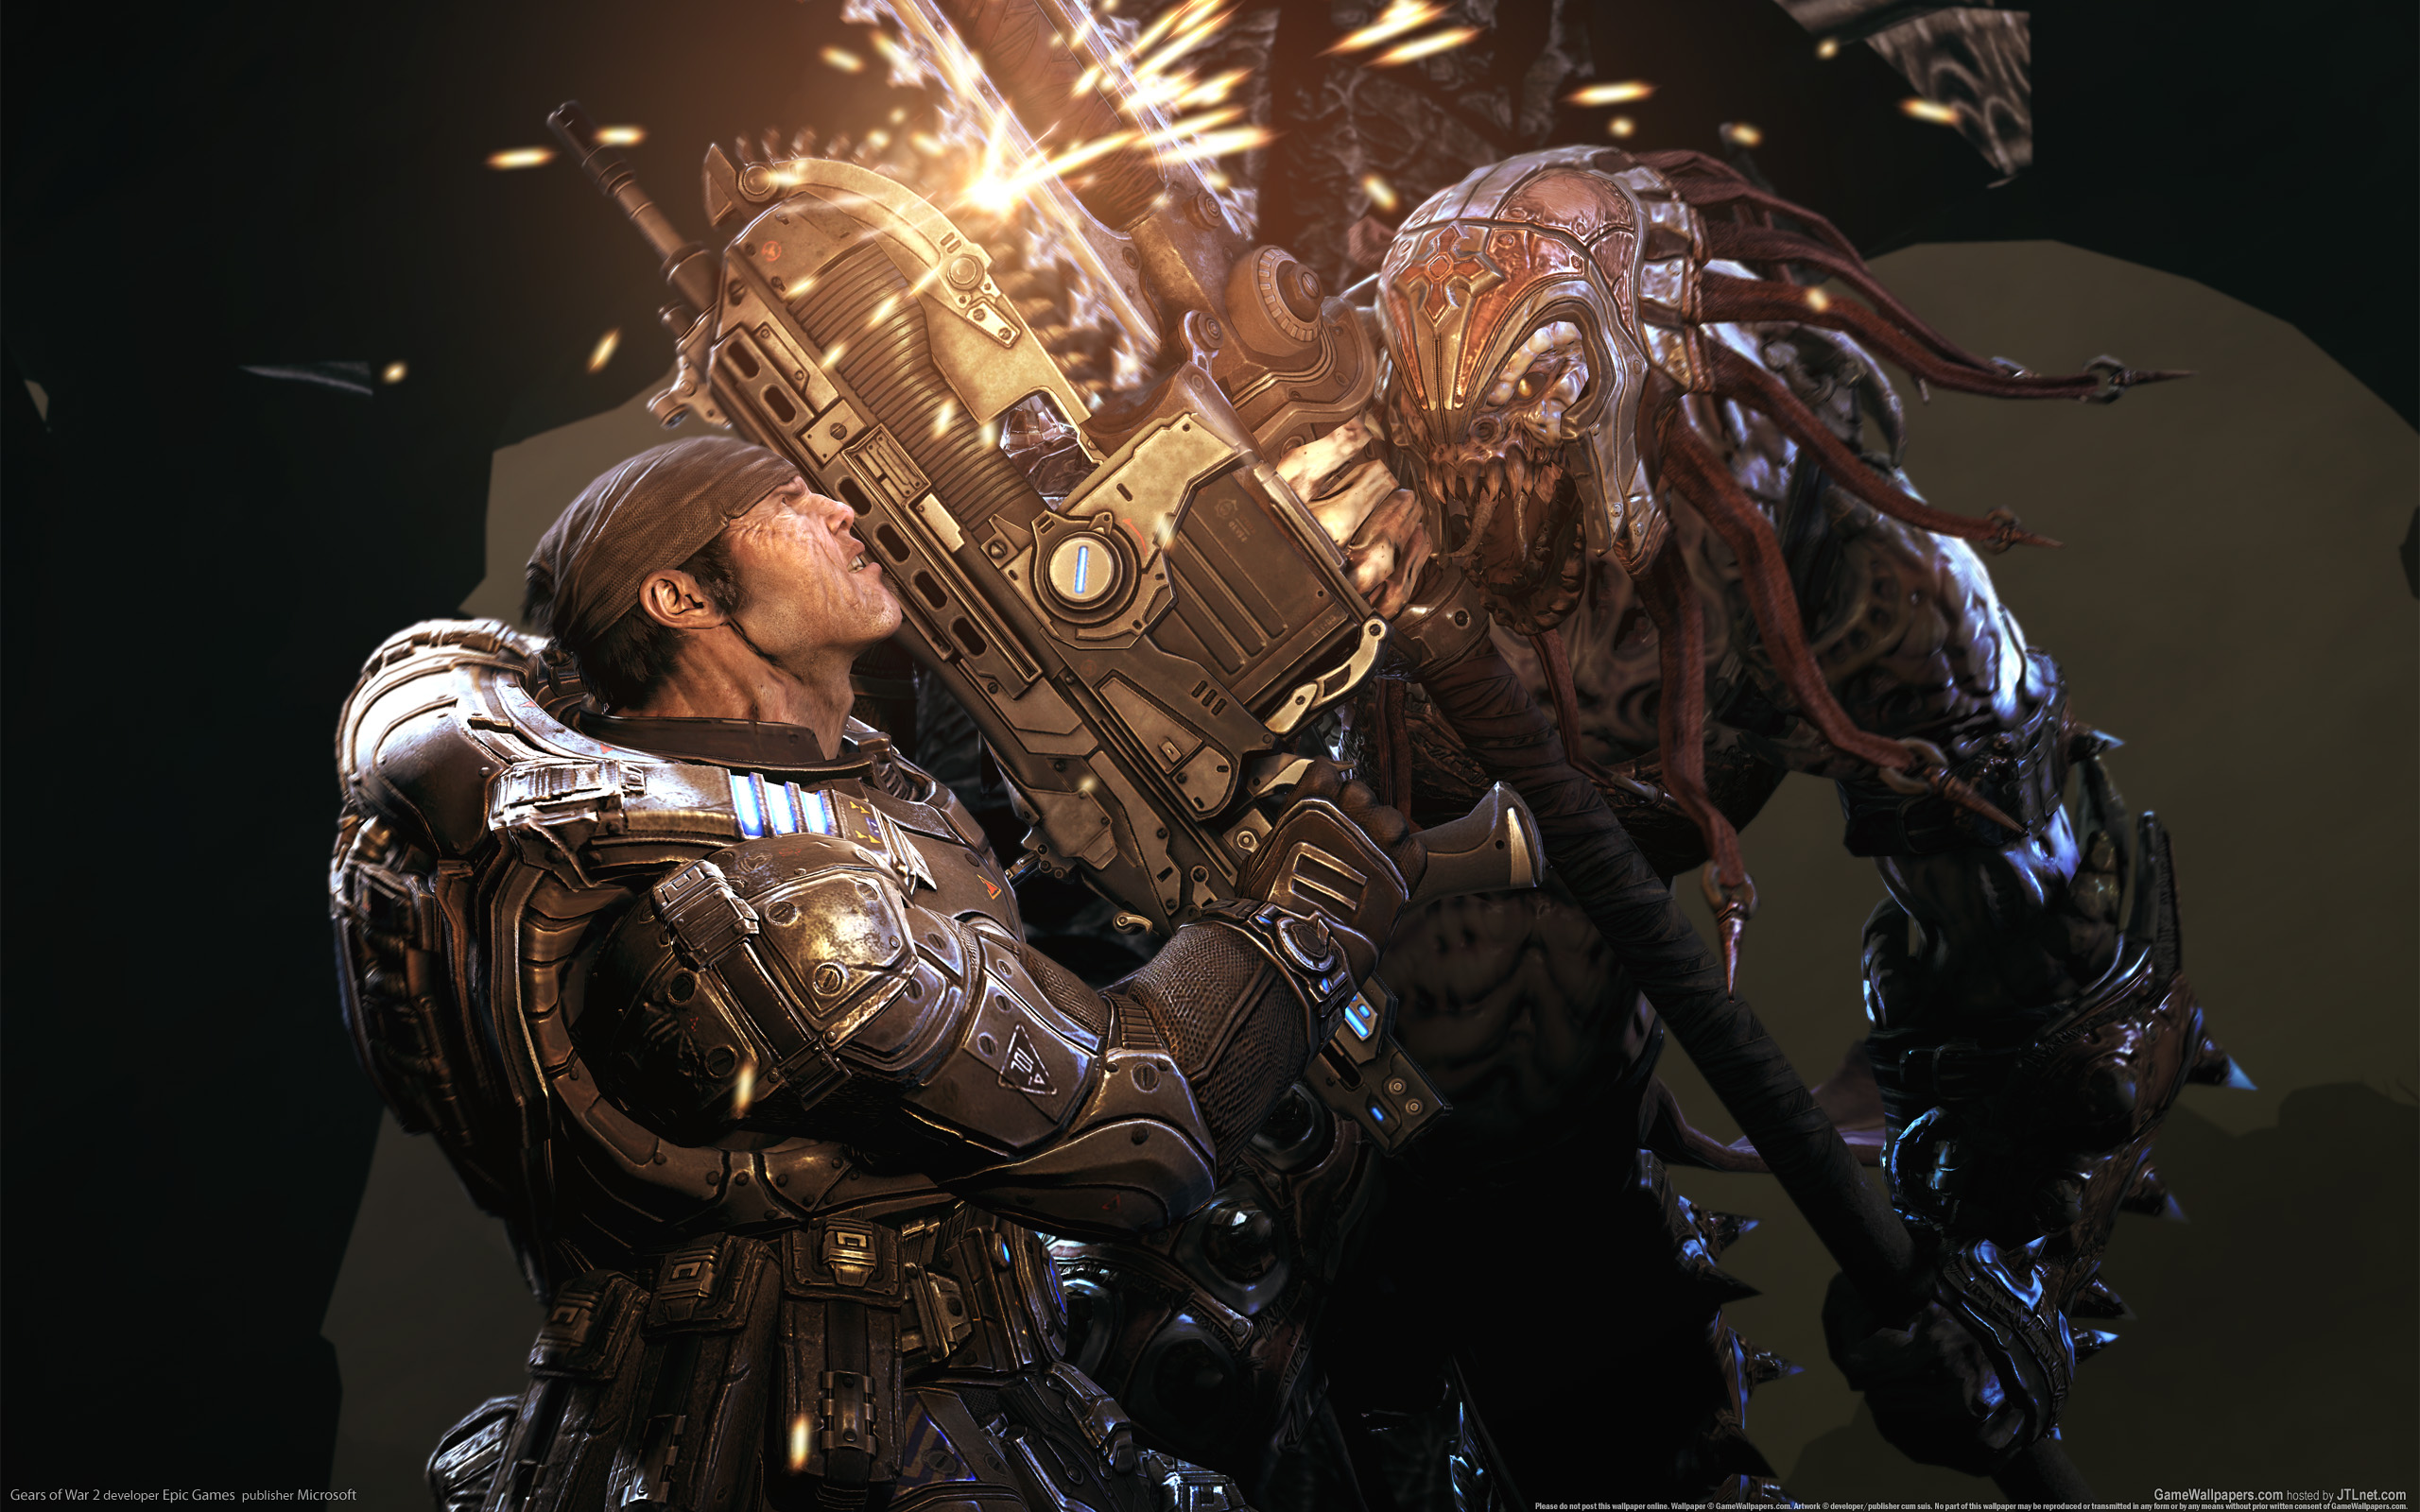 wallpaper_gears_of_war_2_12_2560x1600.jpg